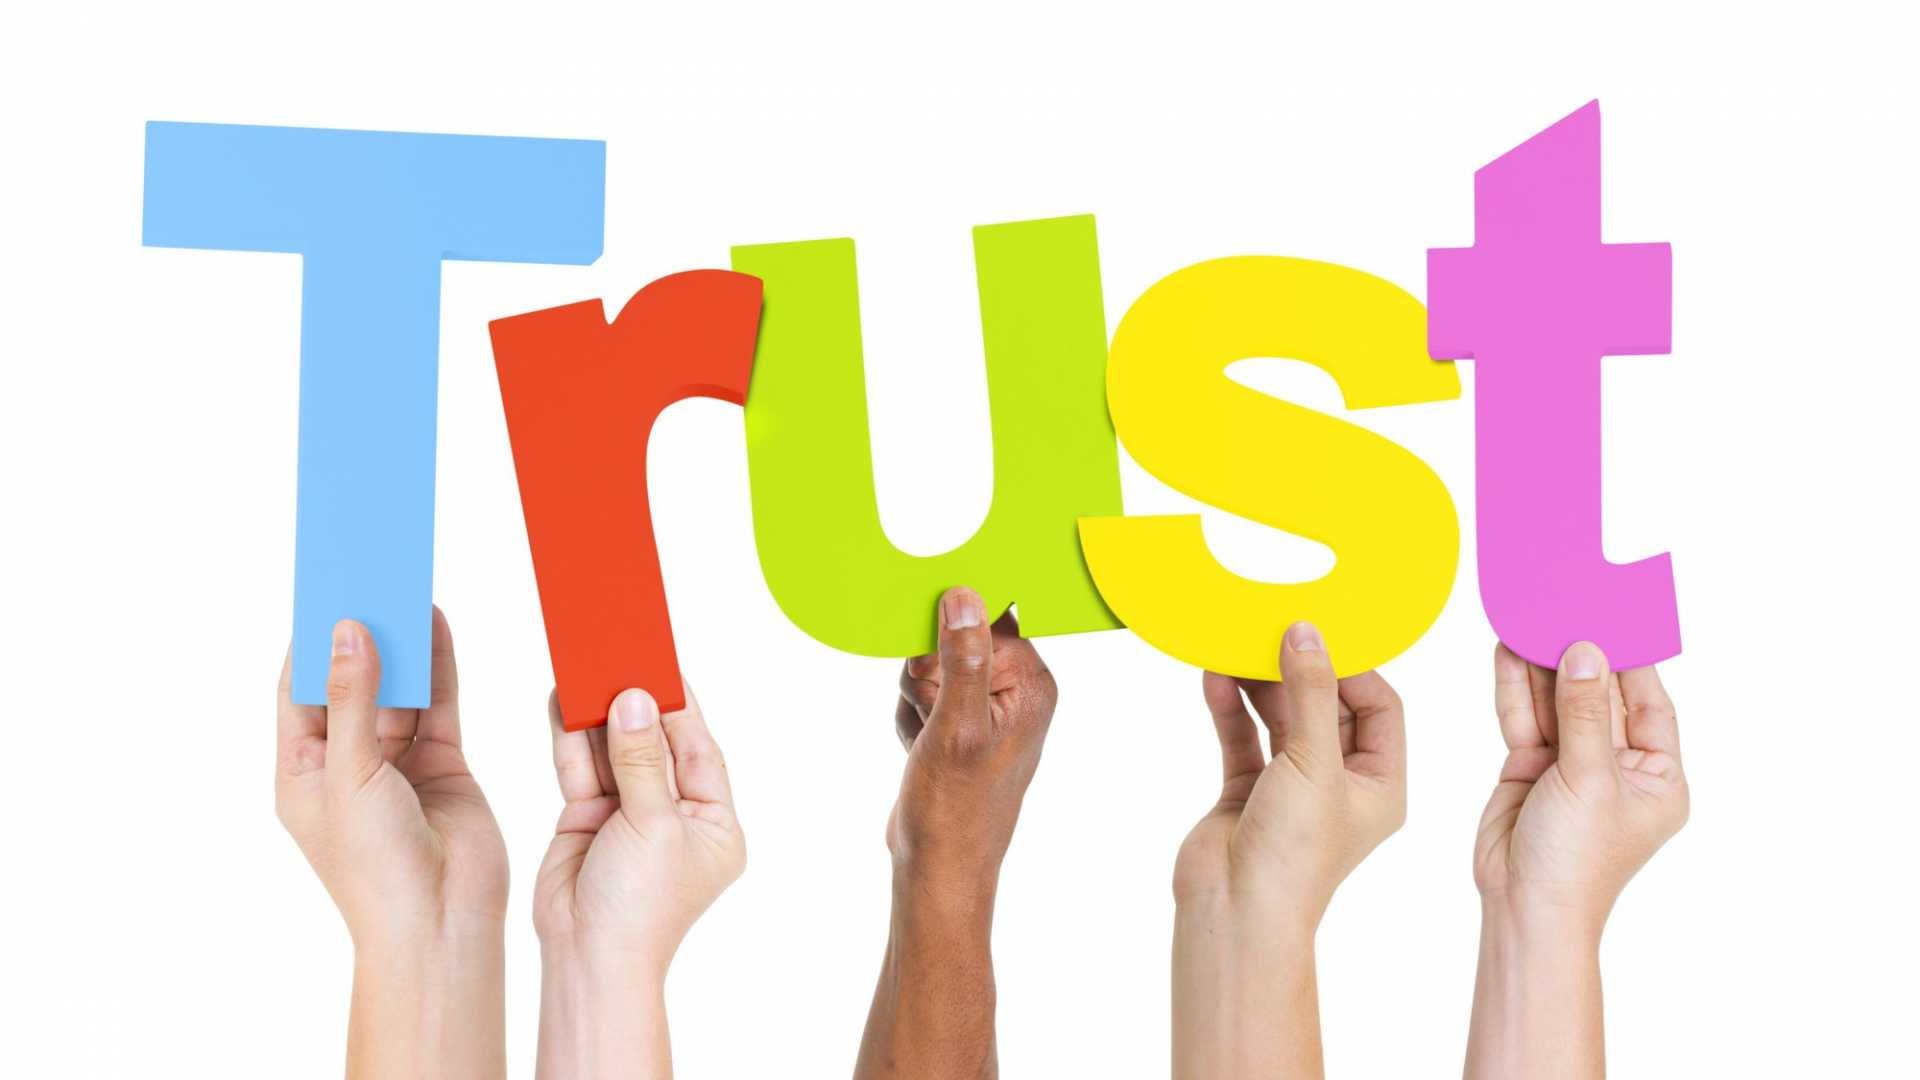 Lead With Trust or Control? You Decide